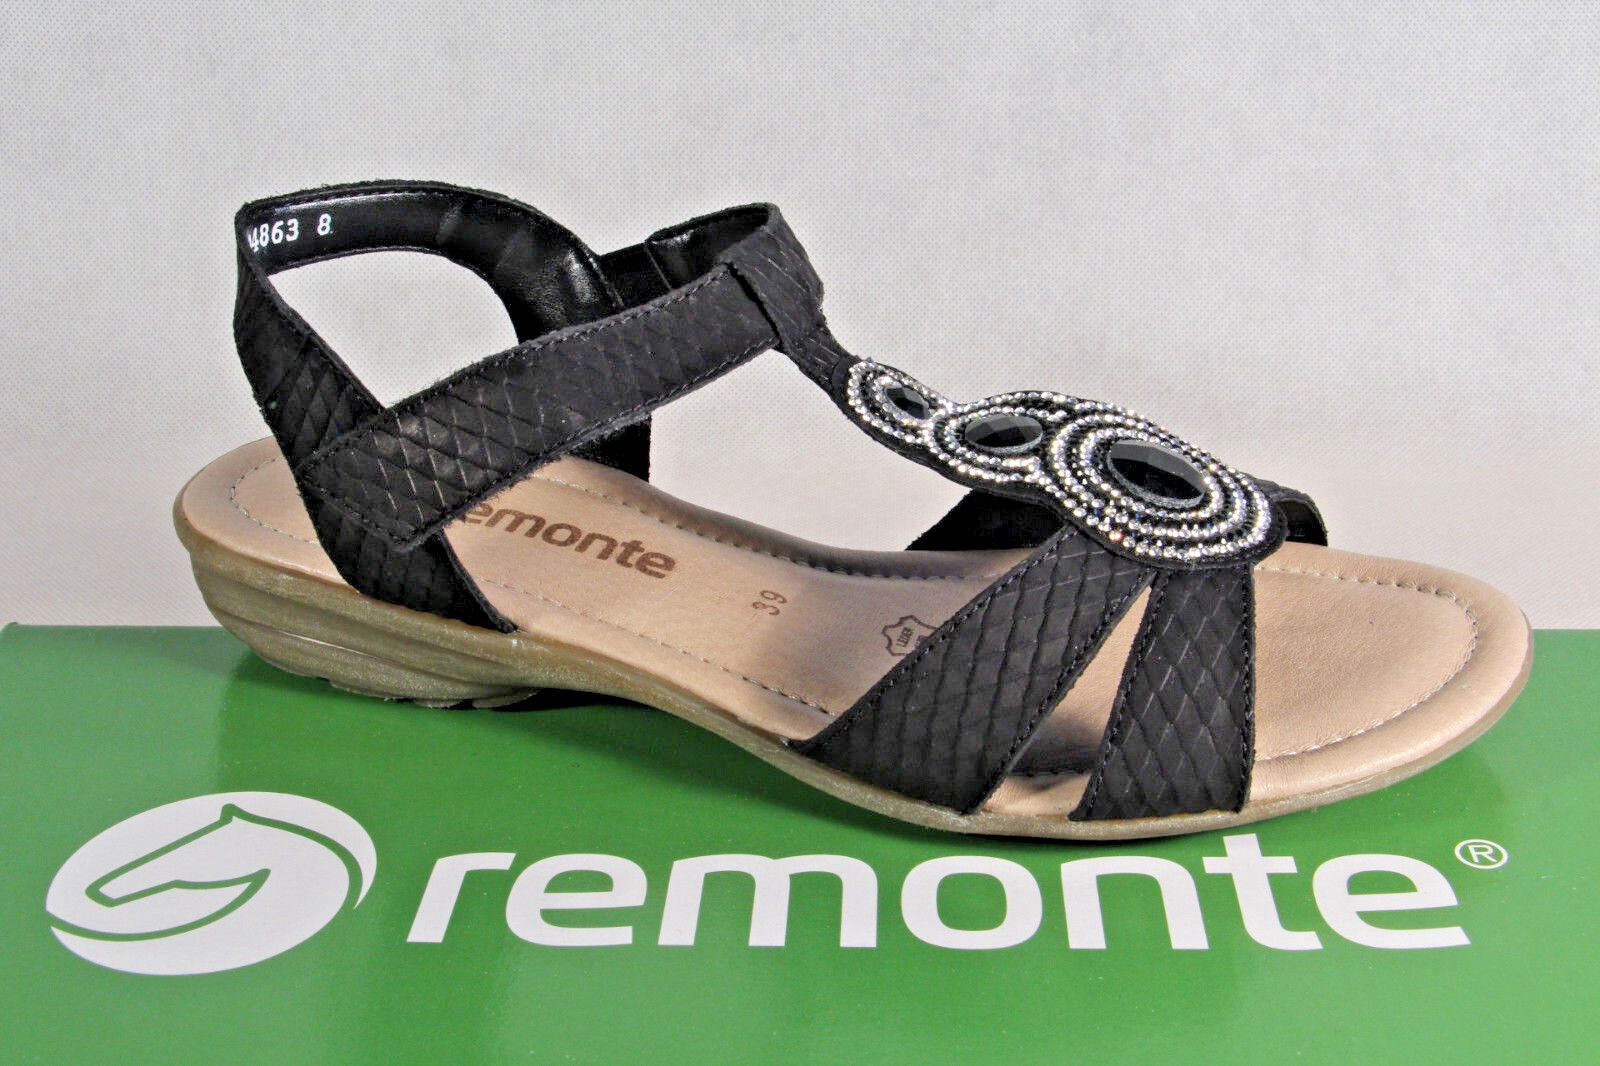 Remonte Sandal Ankle-Strap Sandal Black Leather Footbed Footbed Leather Real Leather NEW 2cc57b